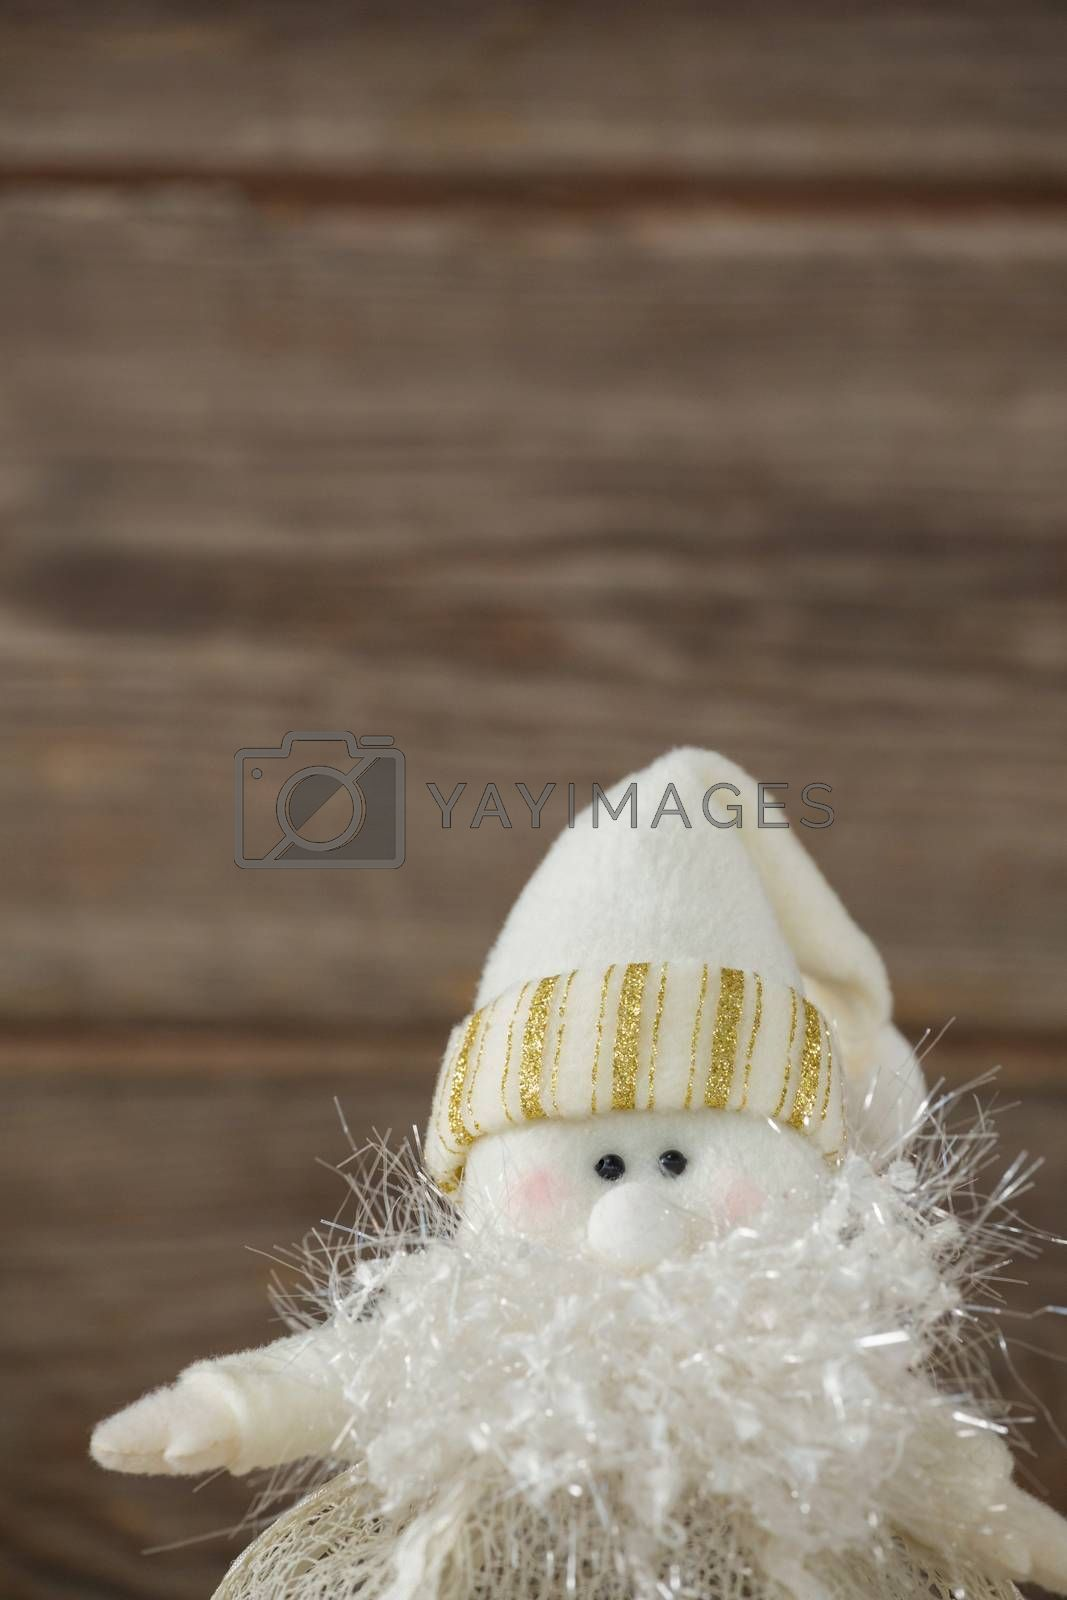 Stuff white snowman made up of cotton and fur by Wavebreakmedia